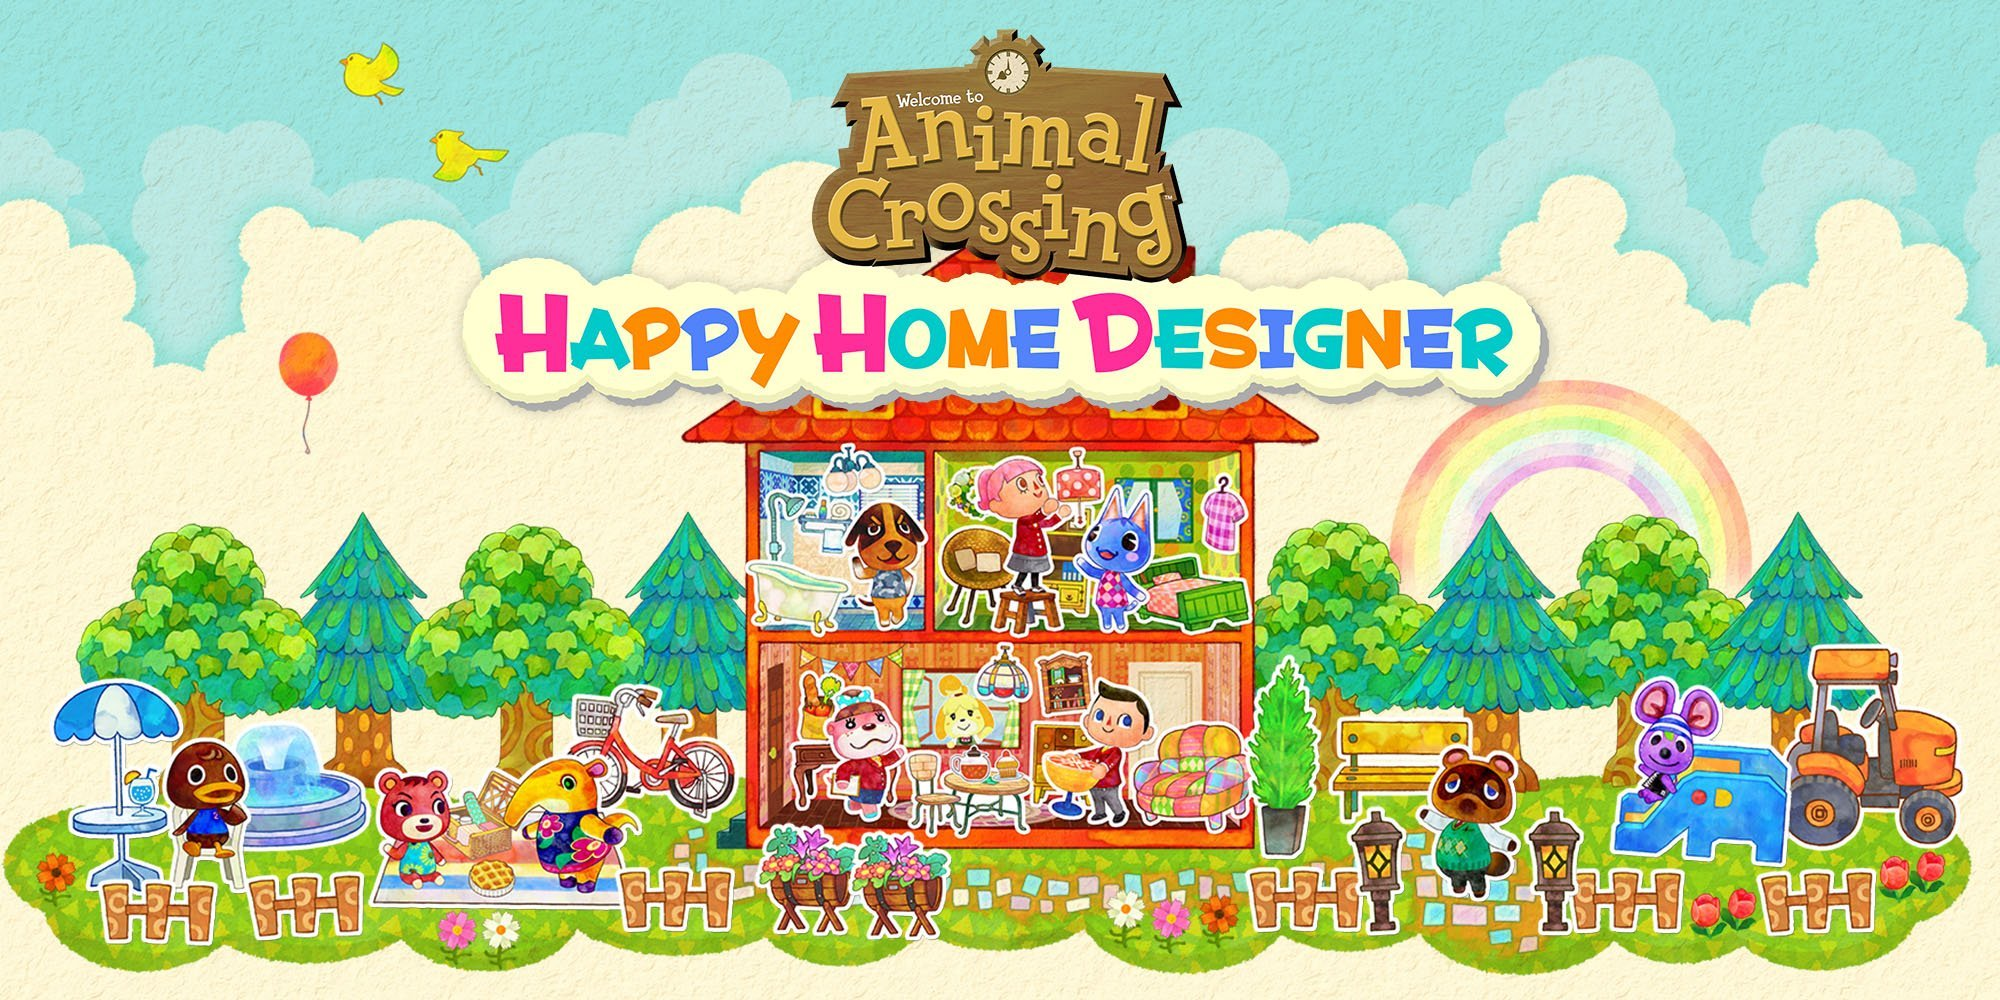 Modojo | Monster Hunter Items are Coming to Animal Crossing: Happy Home Designer